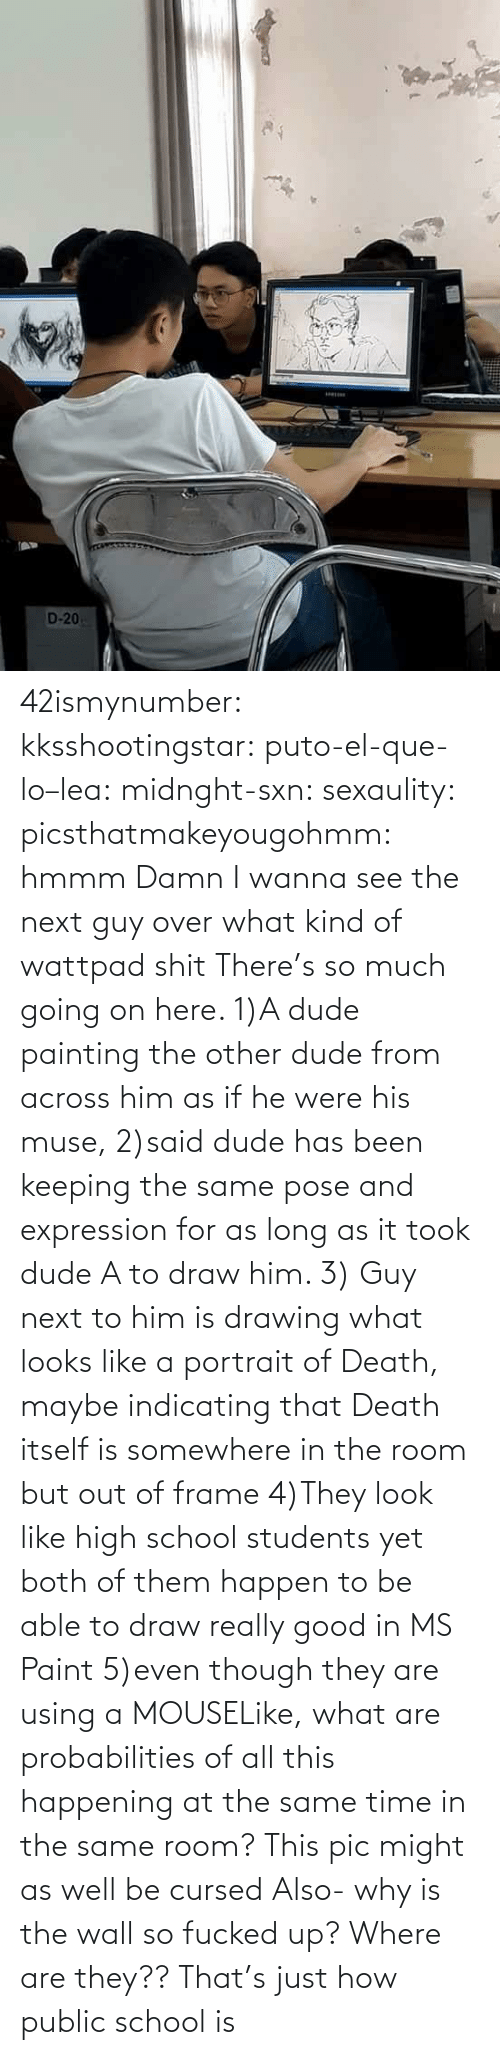 Dude, School, and Tumblr: 42ismynumber:  kksshootingstar:  puto-el-que-lo–lea:  midnght-sxn:   sexaulity:  picsthatmakeyougohmm: hmmm  Damn I wanna see the next guy over  what kind of wattpad shit   There's so much going on here. 1)A dude painting the other dude from across him as if he were his muse, 2)said dude has been keeping the same pose and expression for as long as it took dude A to draw him. 3) Guy next to him is drawing what looks like a portrait of Death, maybe indicating that Death itself is somewhere in the room but out of frame 4)They look like high school students yet both of them happen to be able to draw really good in MS Paint 5)even though they are using a MOUSELike, what are probabilities of all this happening at the same time in the same room? This pic might as well be cursed   Also- why is the wall so fucked up? Where are they??   That's just how public school is